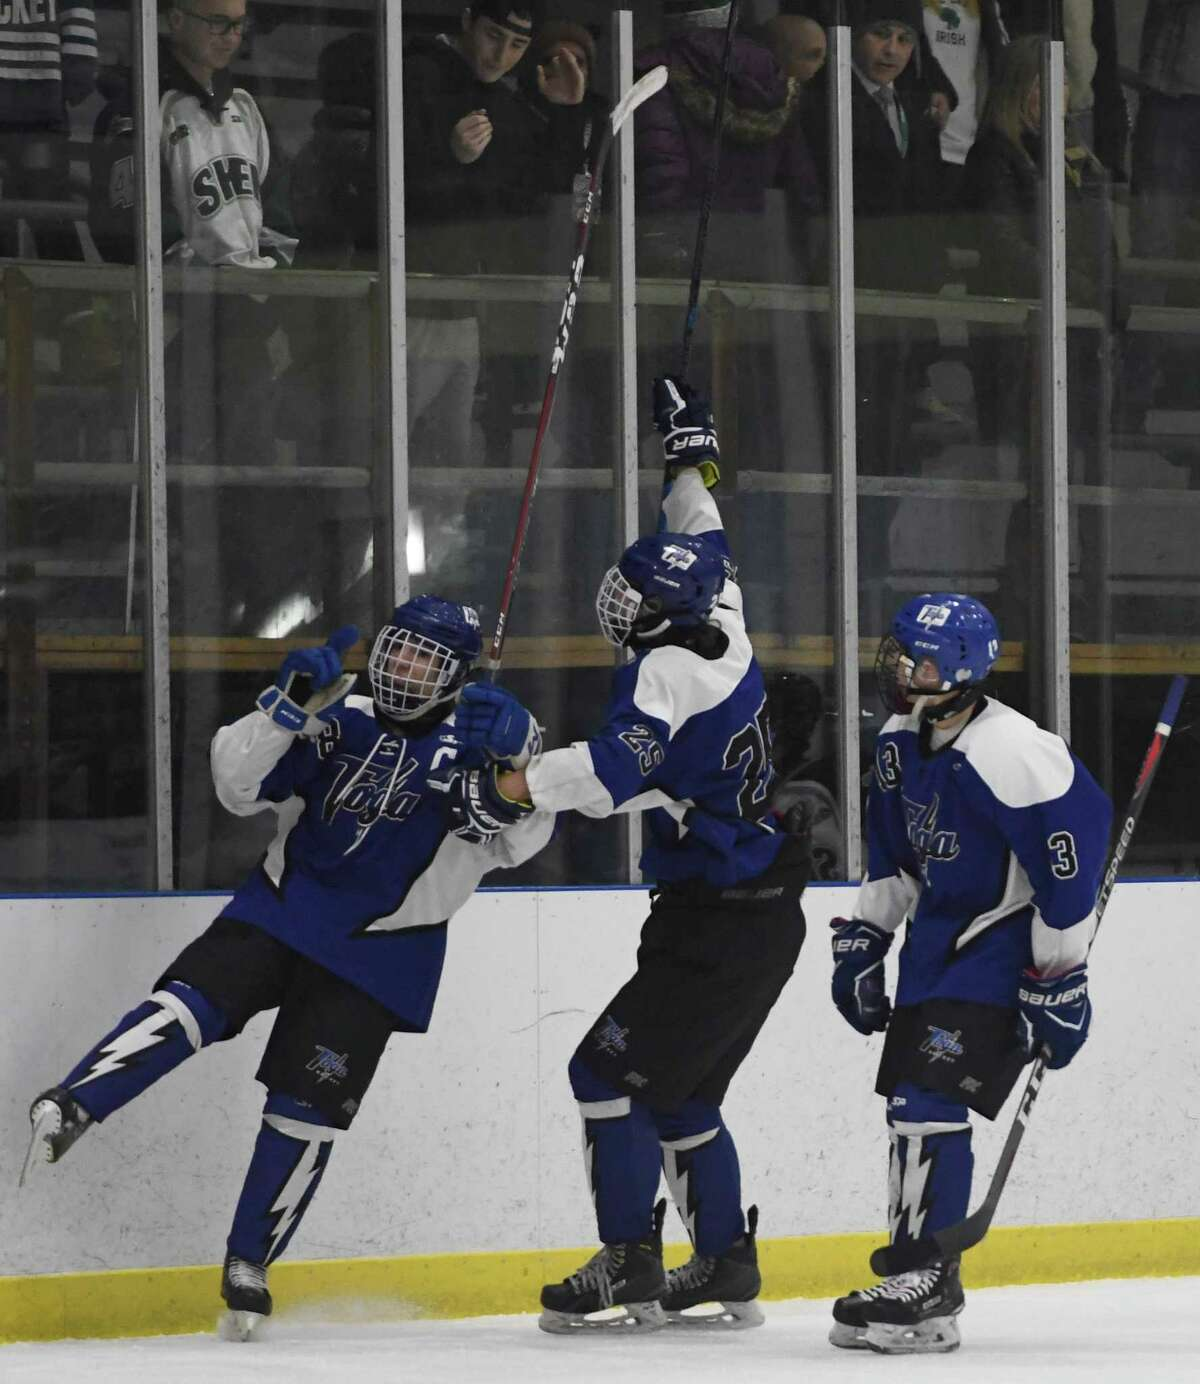 Saratoga varsity players skate by Shenendehowa fans following their first goal during a game on Wednesday, Dec. 19, 2018 in Clifton Park, N.Y. (Jenn March, Special to the Times Union )